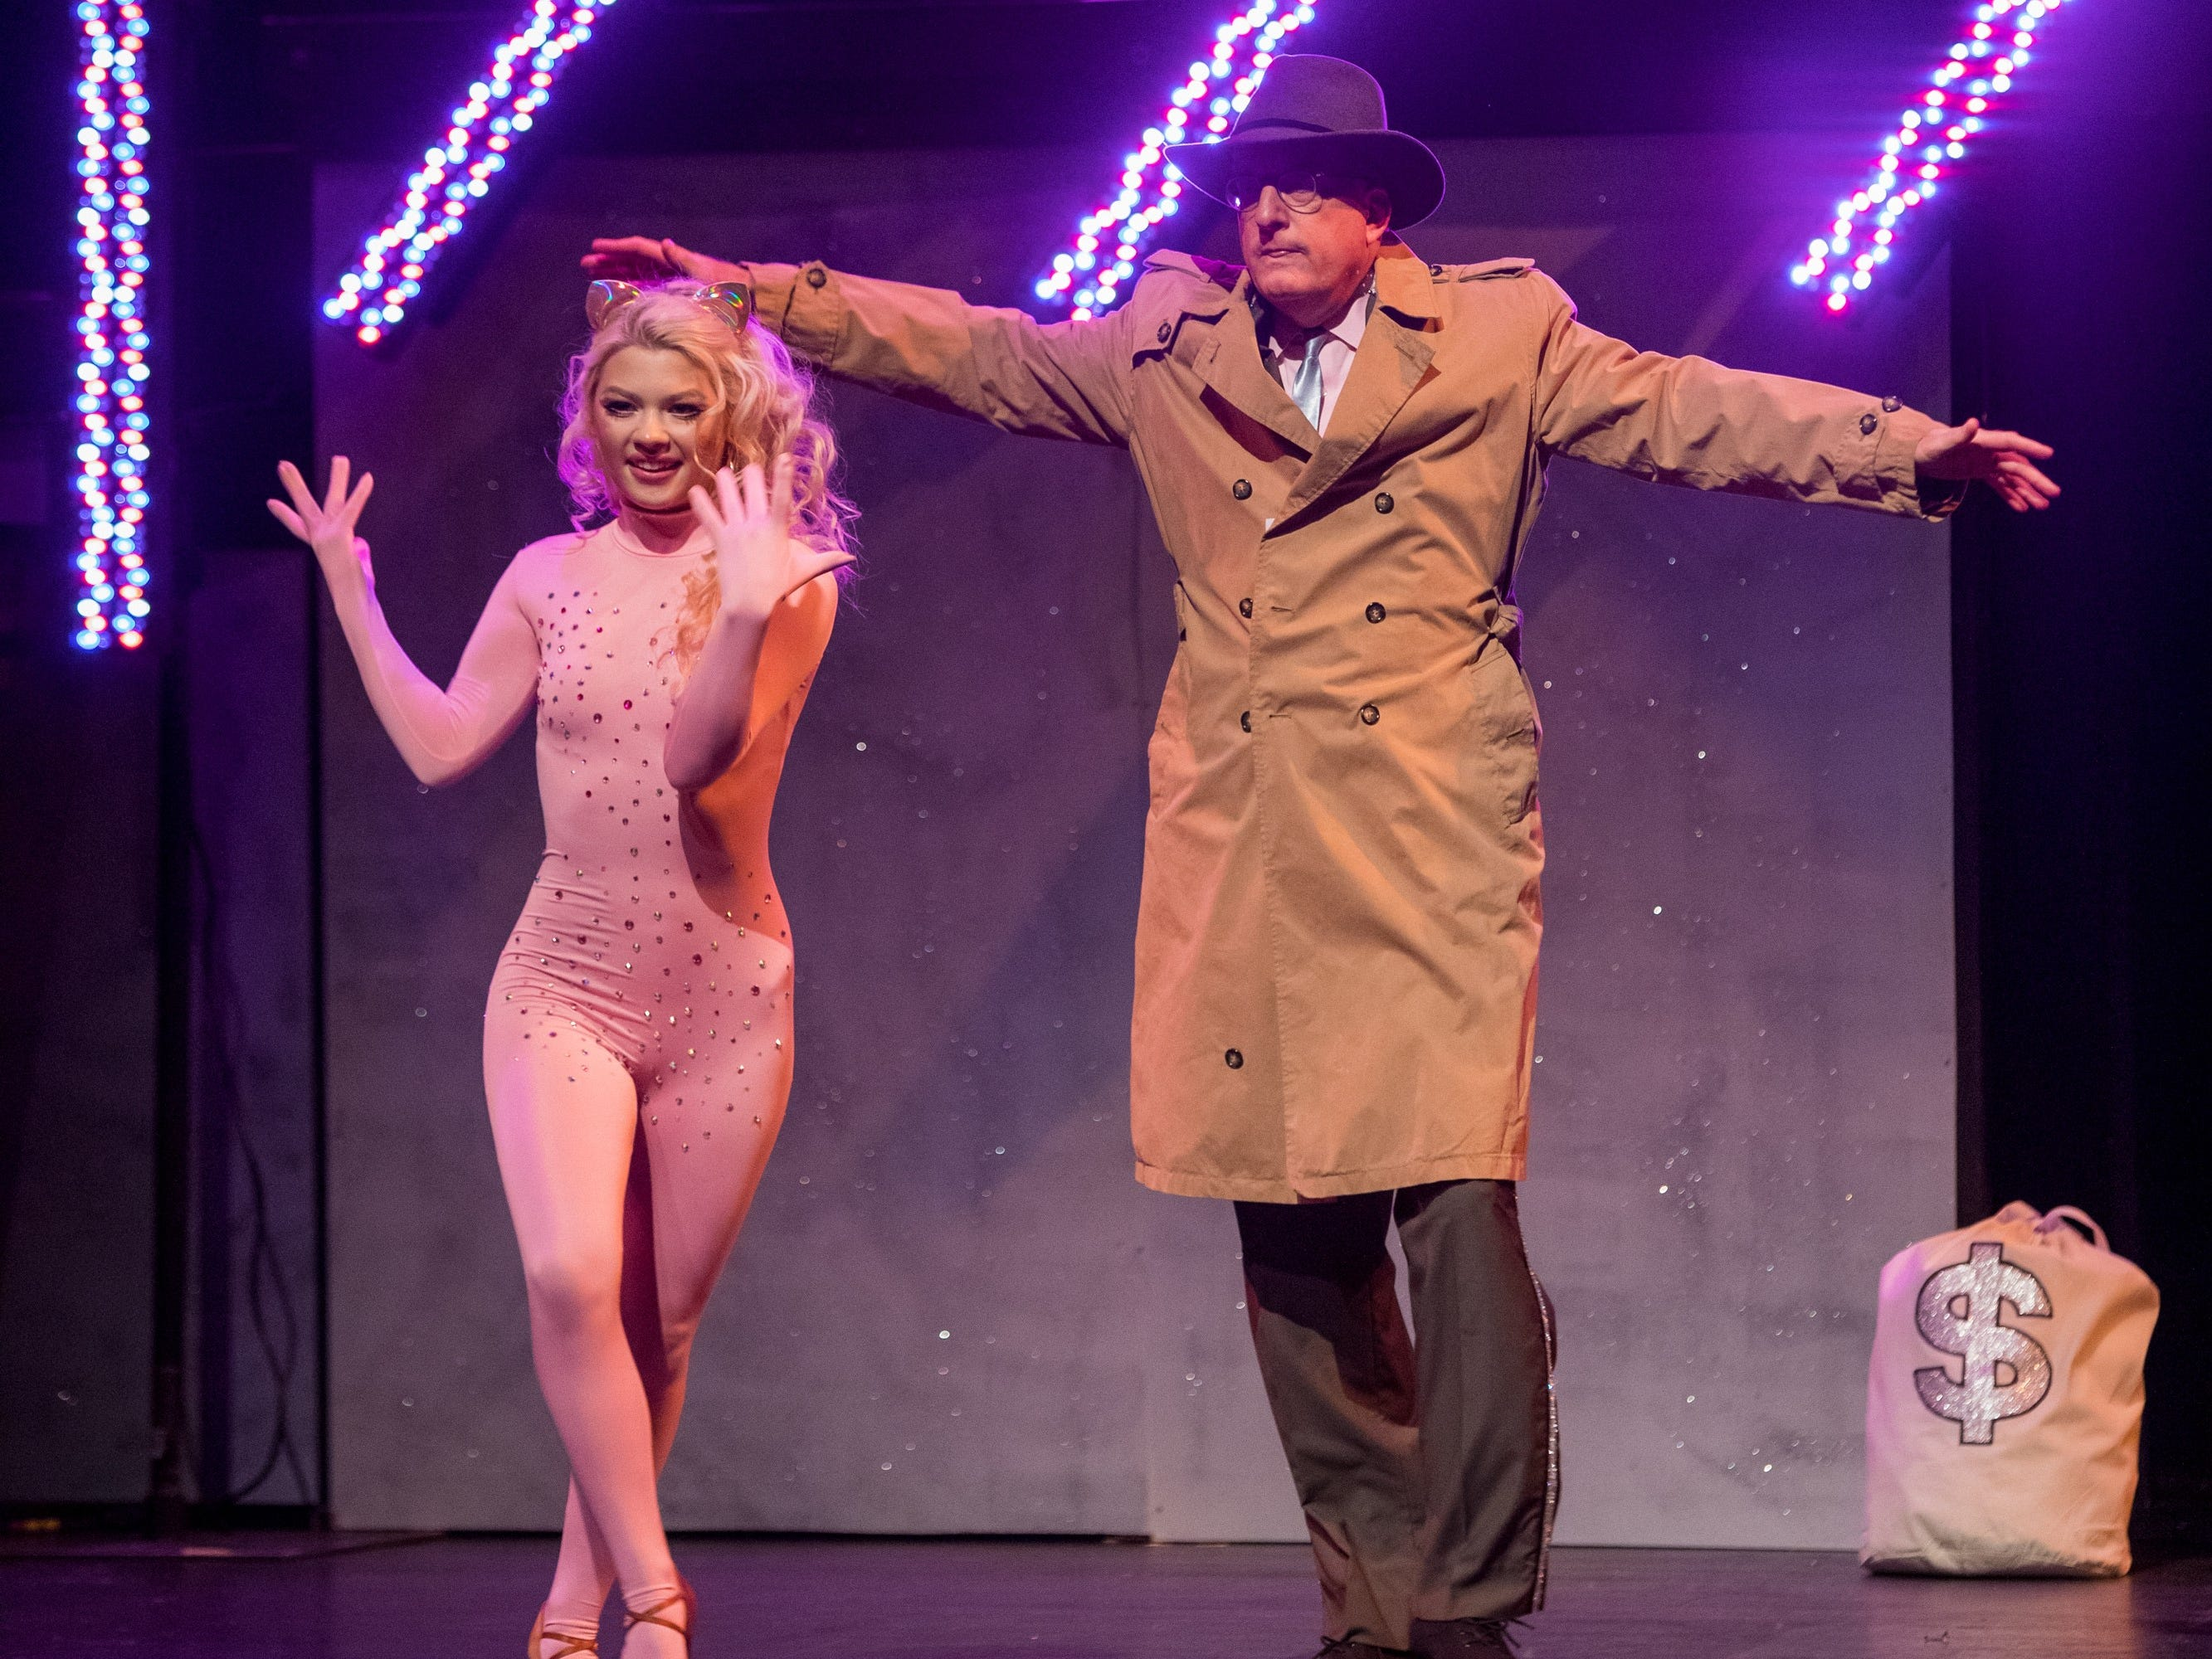 """Charles Frederick, N.C. Market President for TD Bank, and his professional dance partner Miriam Marie, dance to the theme song from """"Pink Panther"""" Feb. 24 at the """"Dancing with the Local Stars"""" fundraiser for the American Cancer Society in Asheville."""